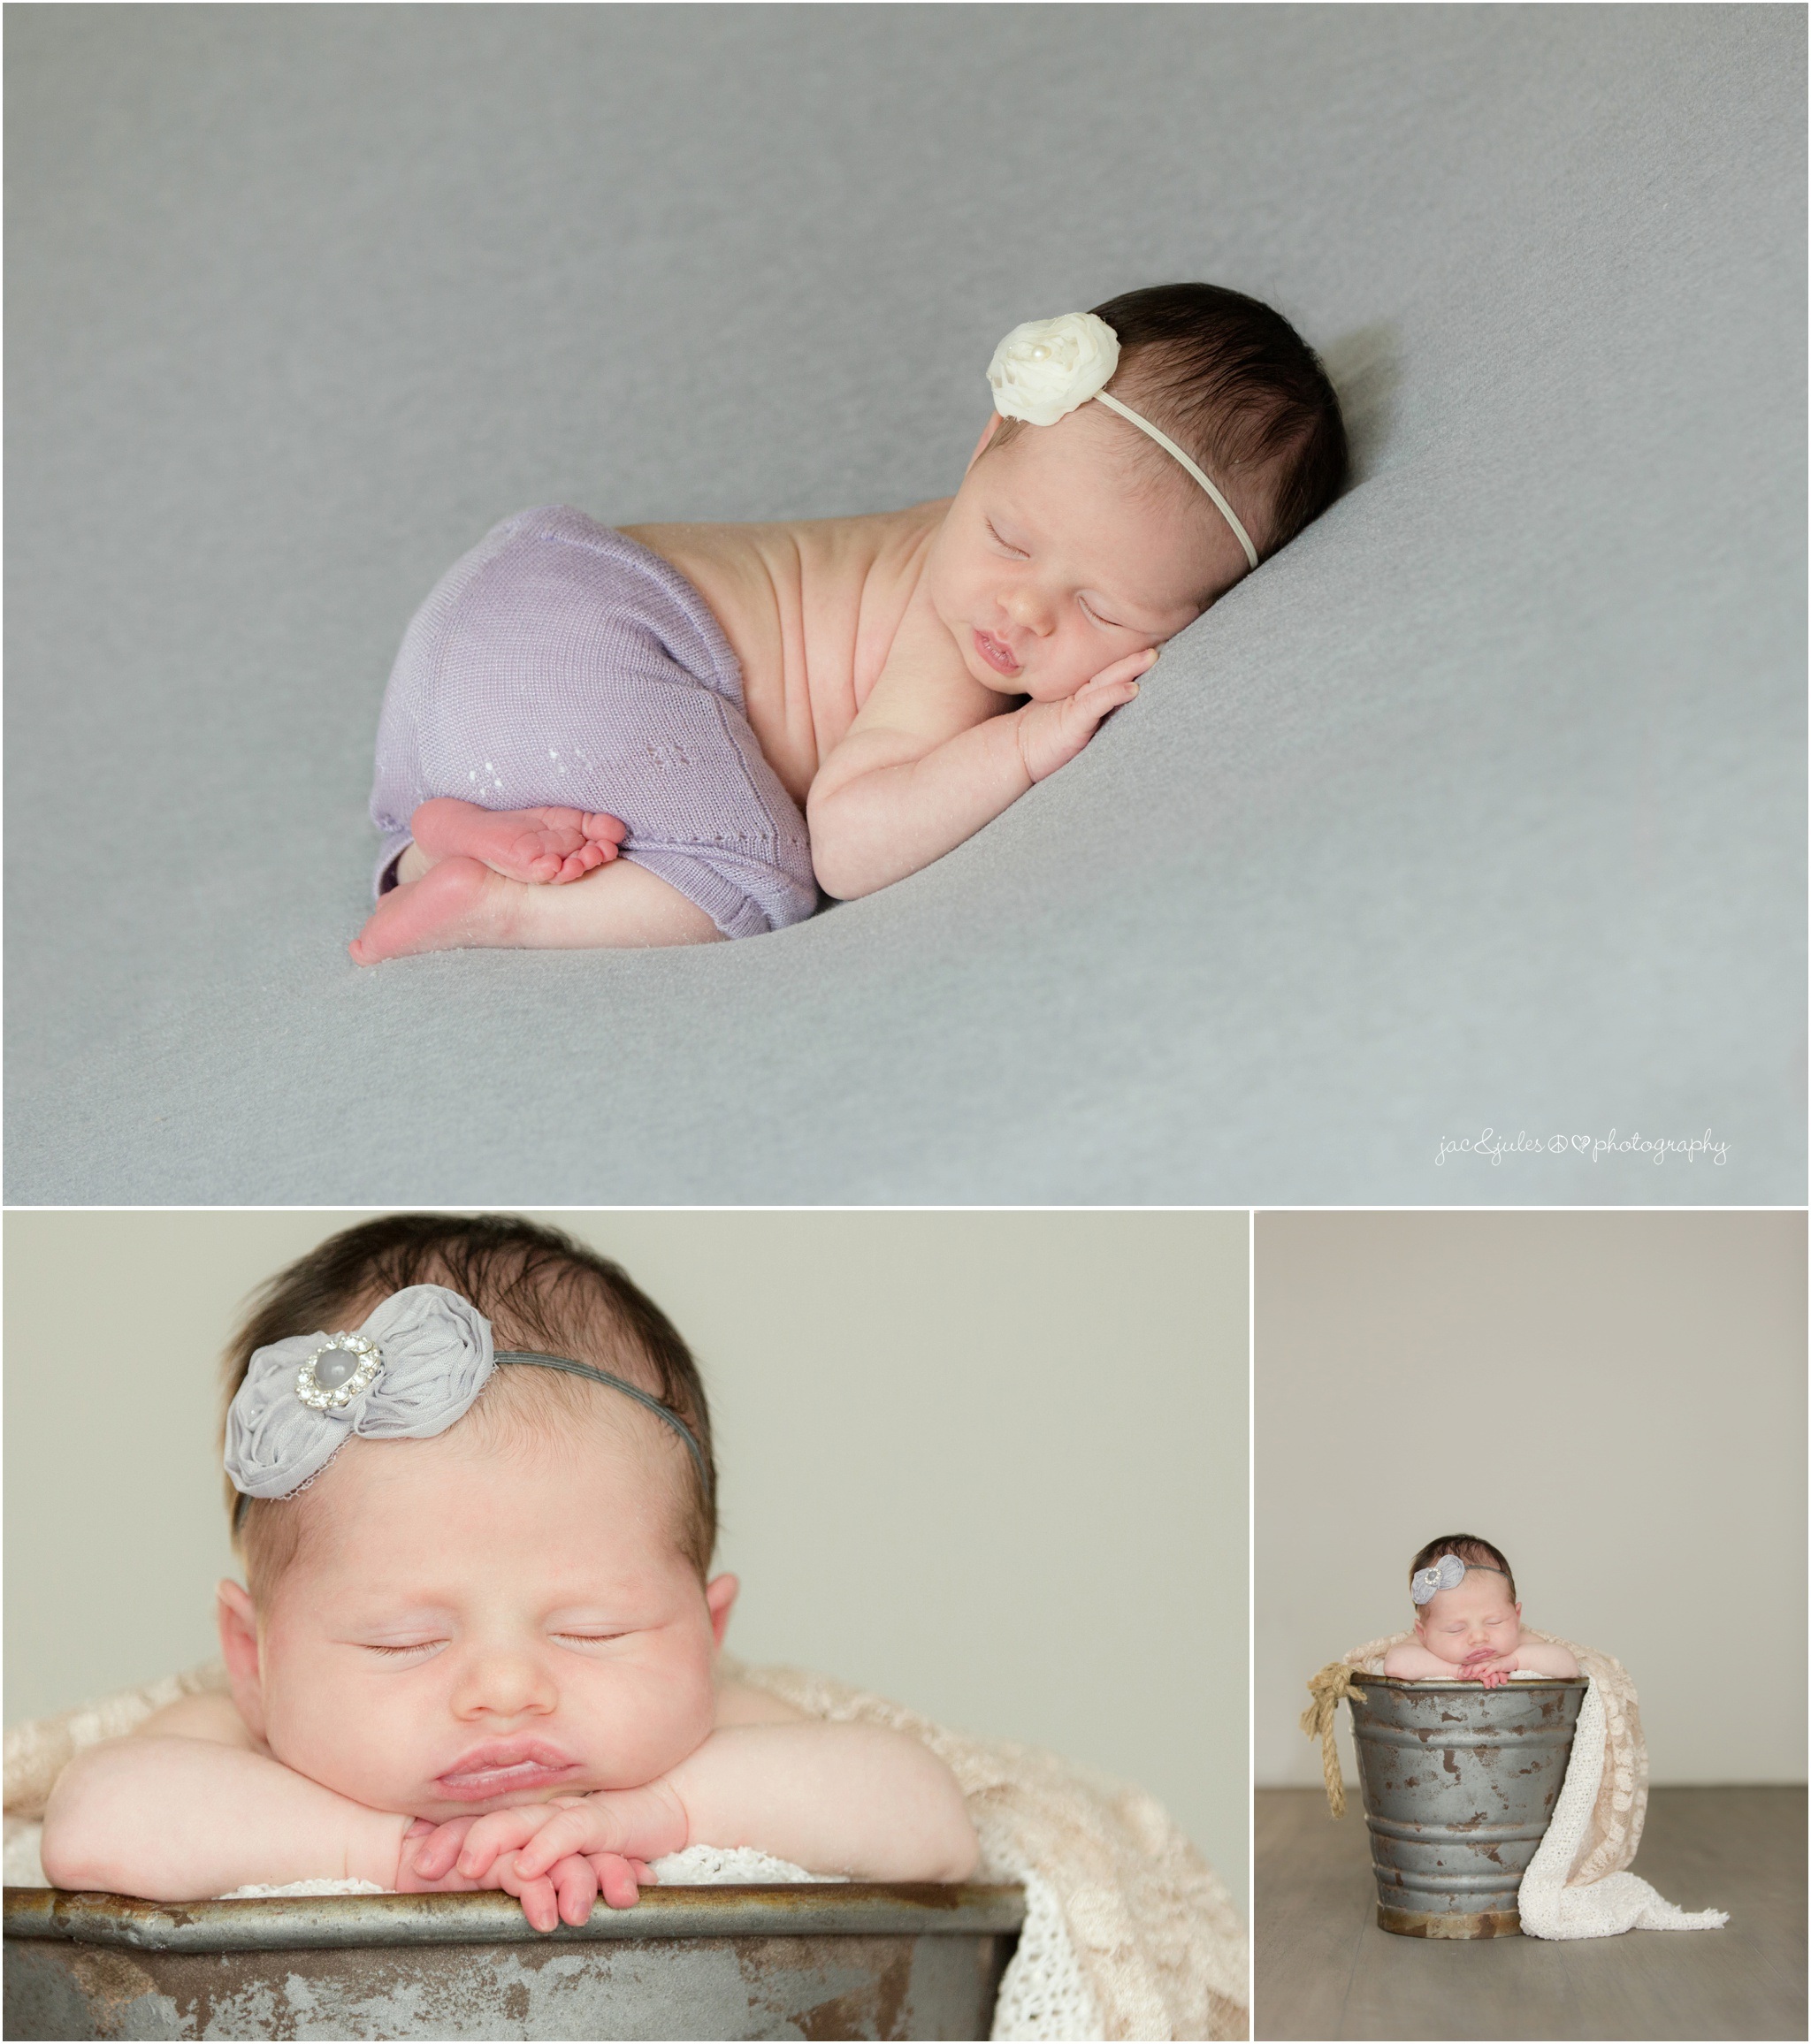 newborn baby girl in lavender shorts and metal pail